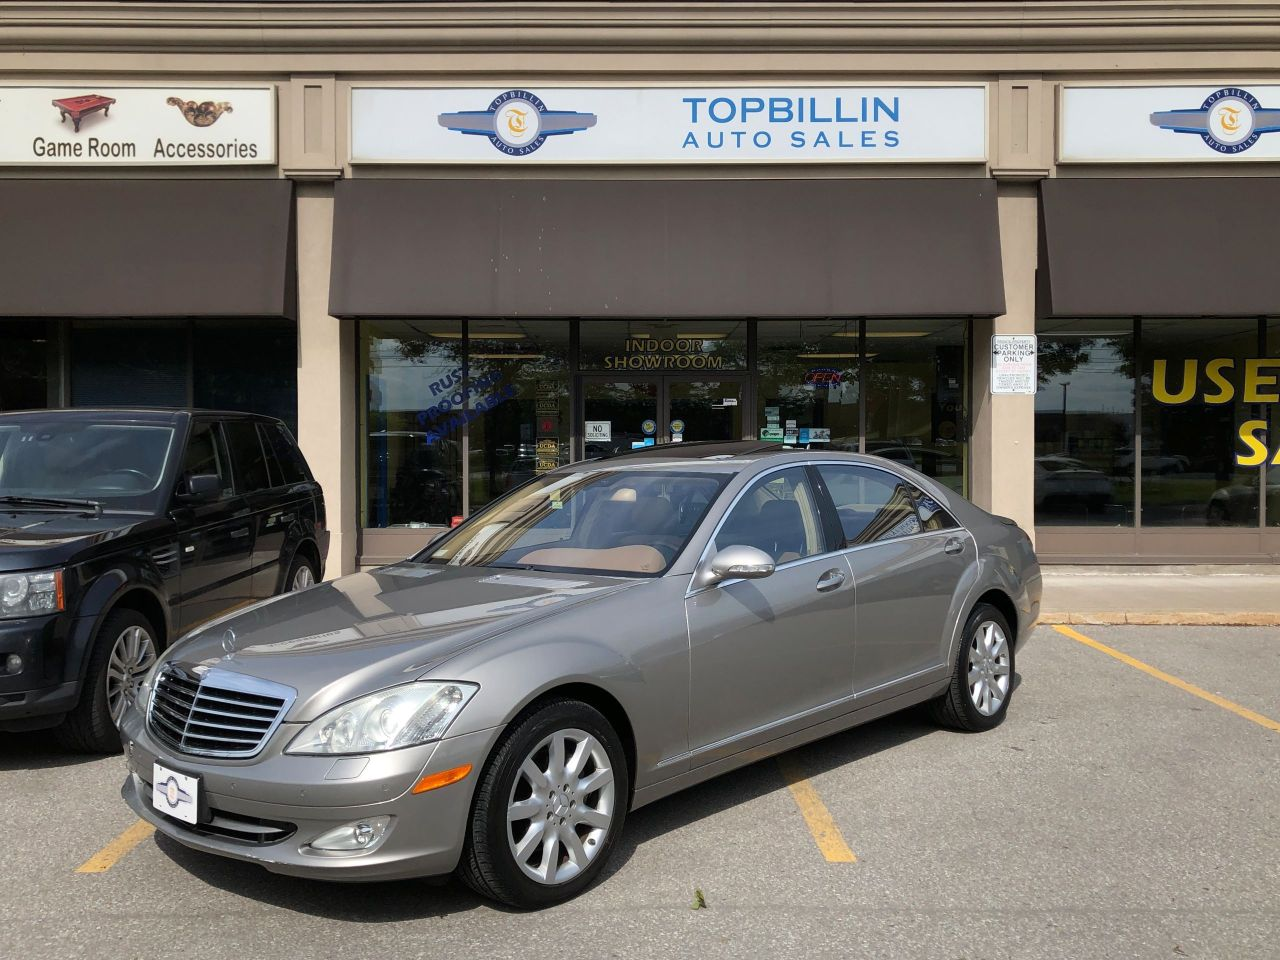 2007 Mercedes-Benz S-Class Navi, Night Vision, Only 64K kms